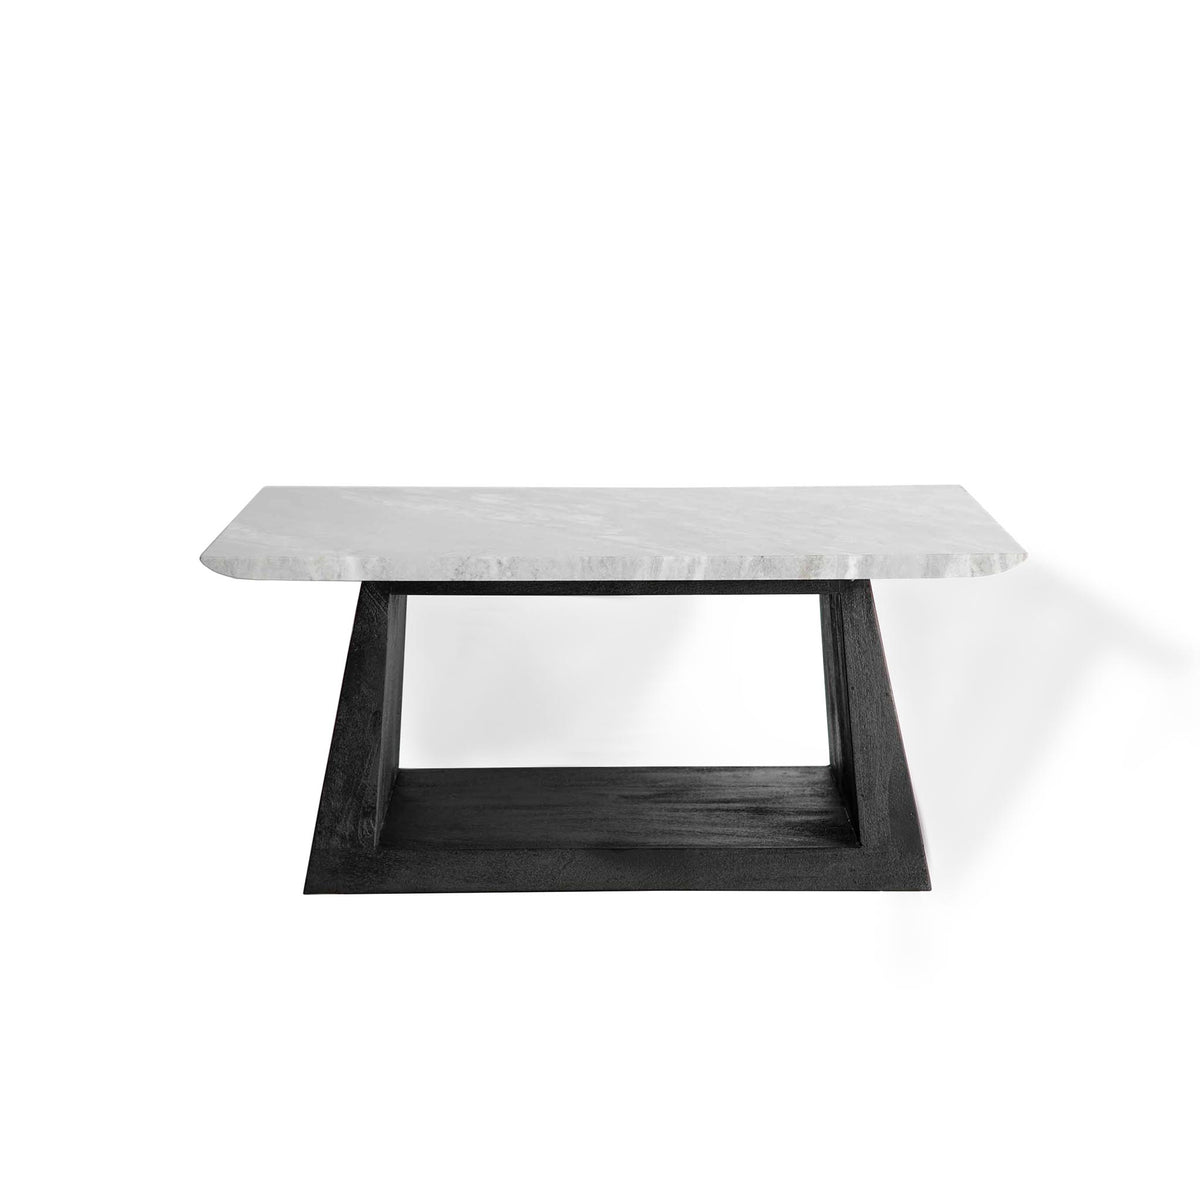 Genoa Coffee Table - Front view